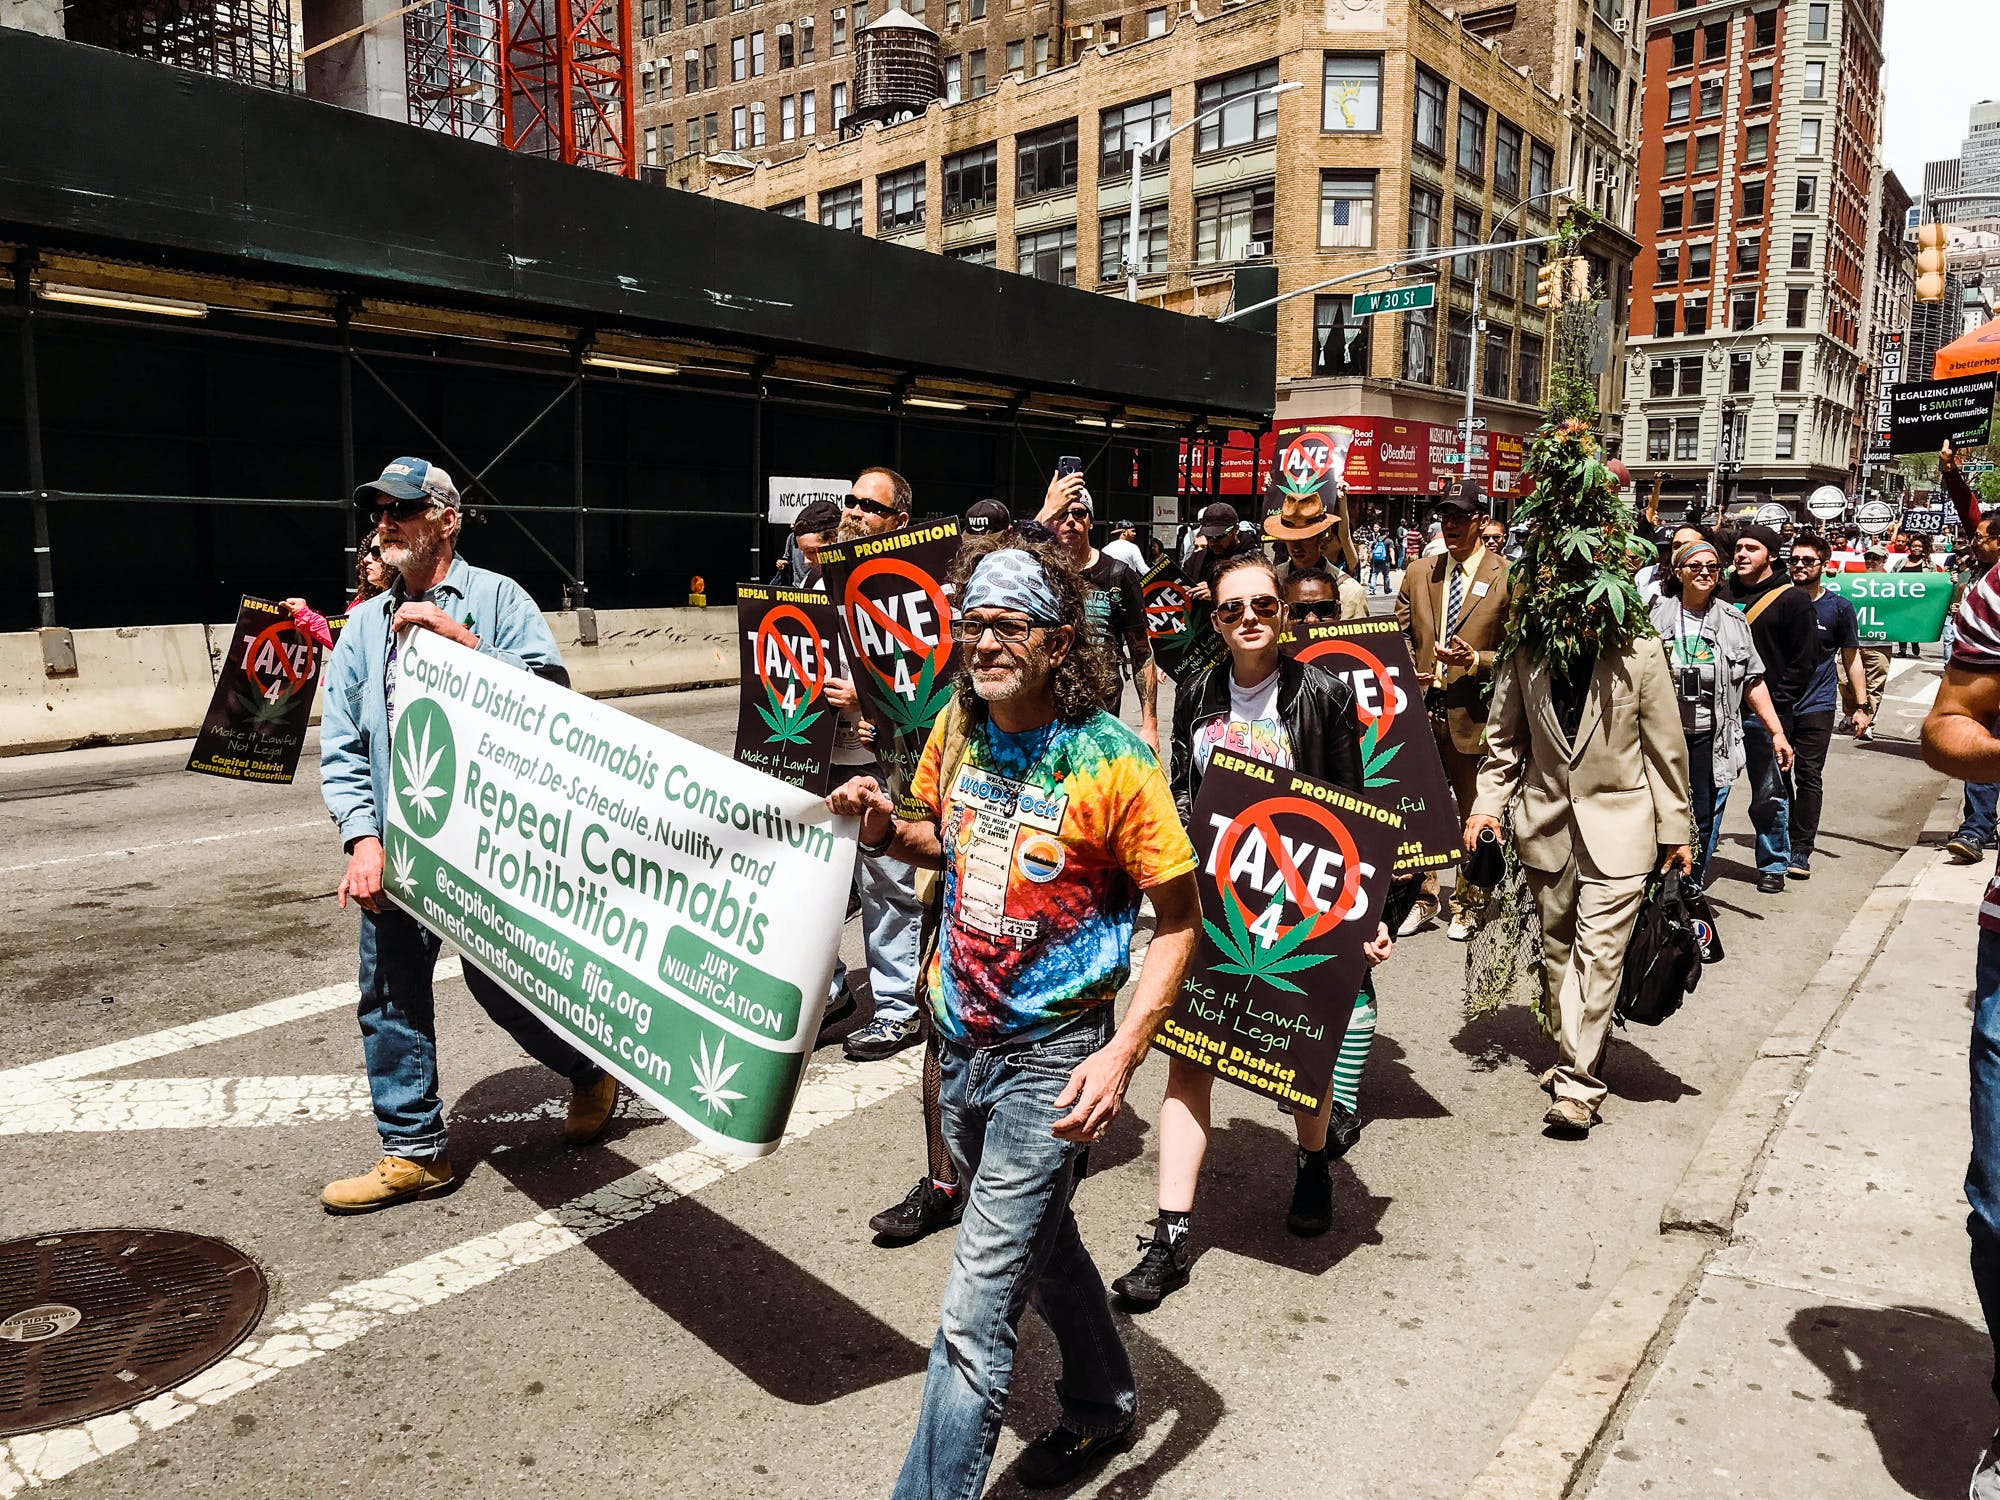 IMG 0909 Manhattans District Attorney Will No Longer Prosecute Low Level Cannabis Crimes